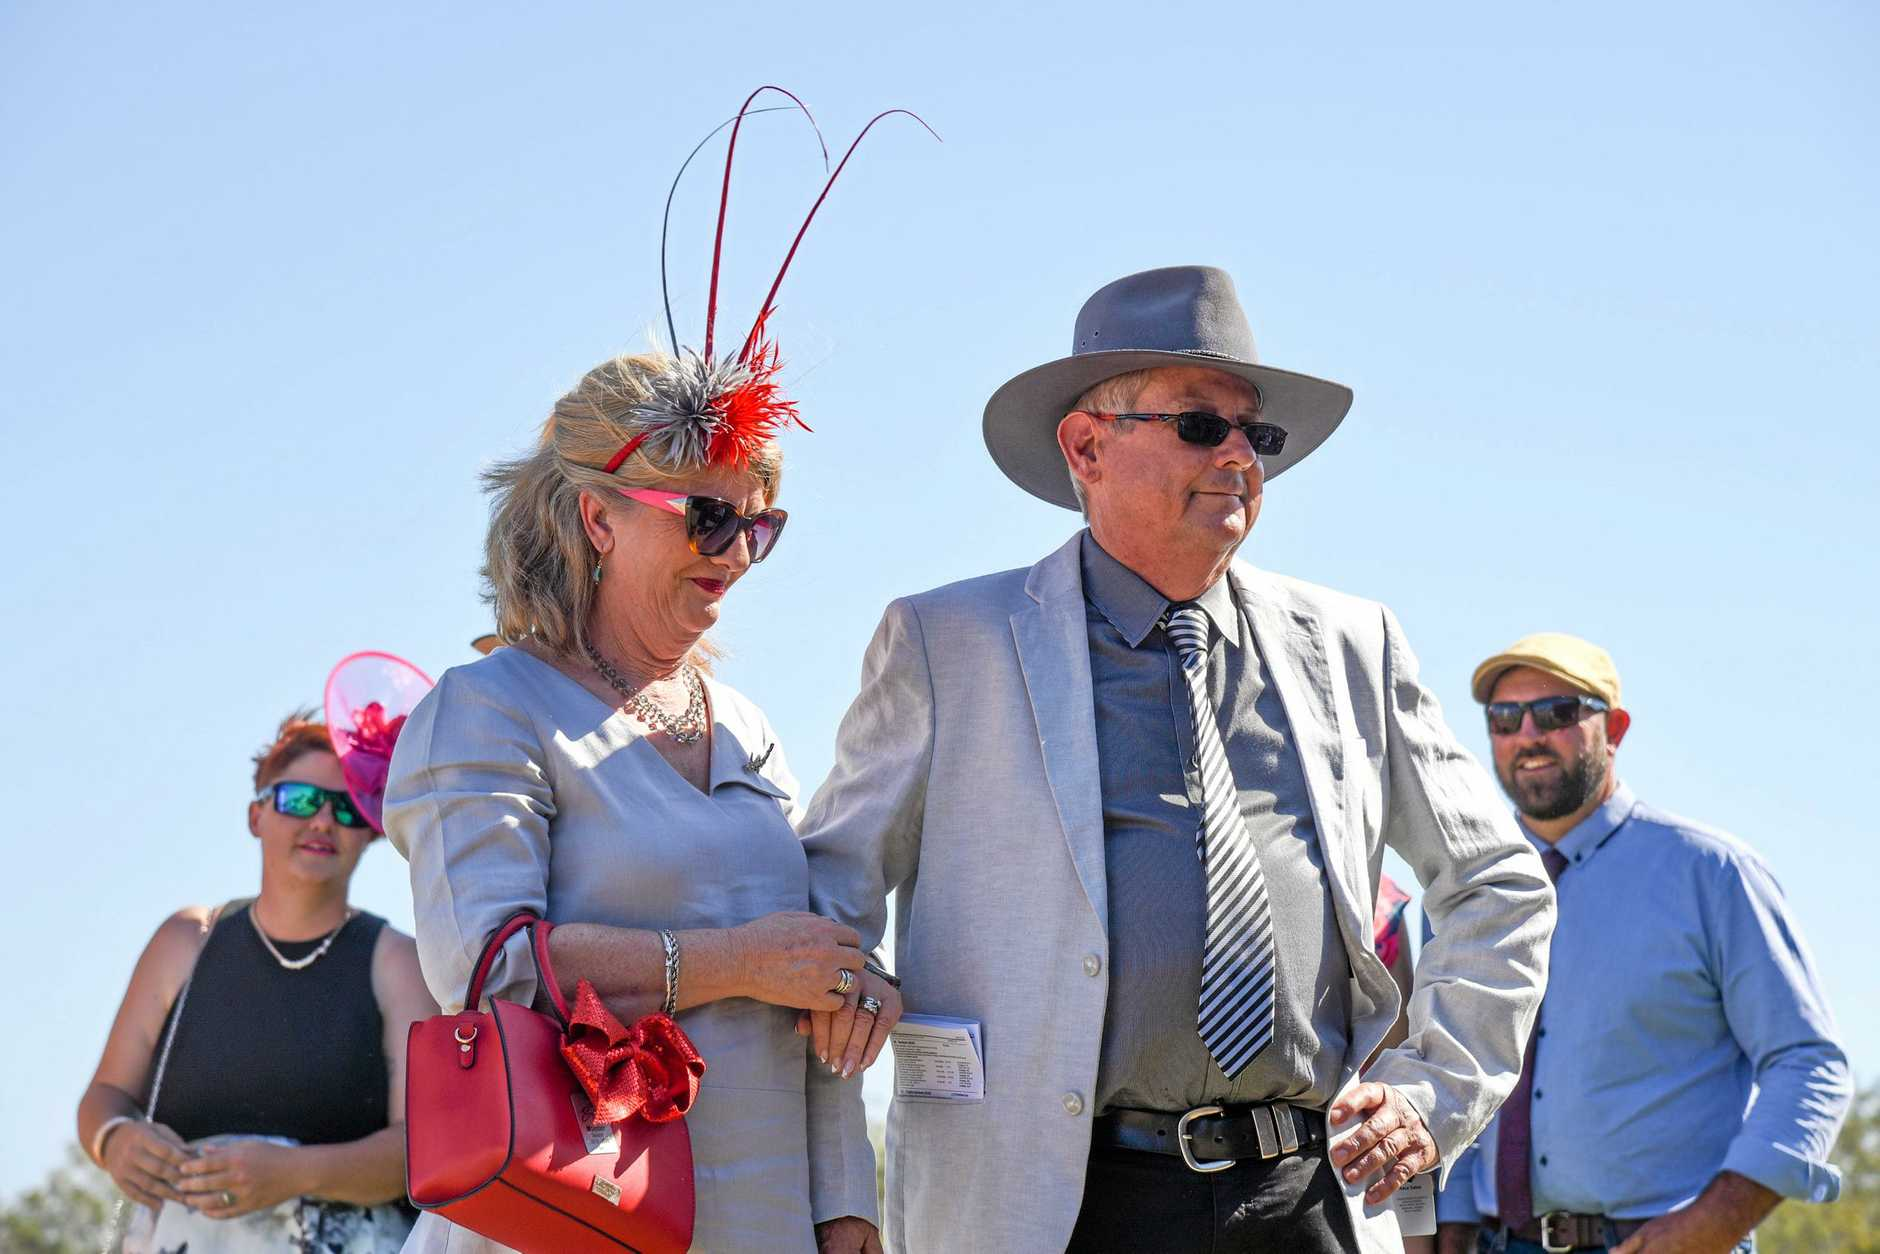 Winners of the 'Delightful Duo' class at Eidsvold Races 2019 Fashions on the Field, David and Margie McIntyre.